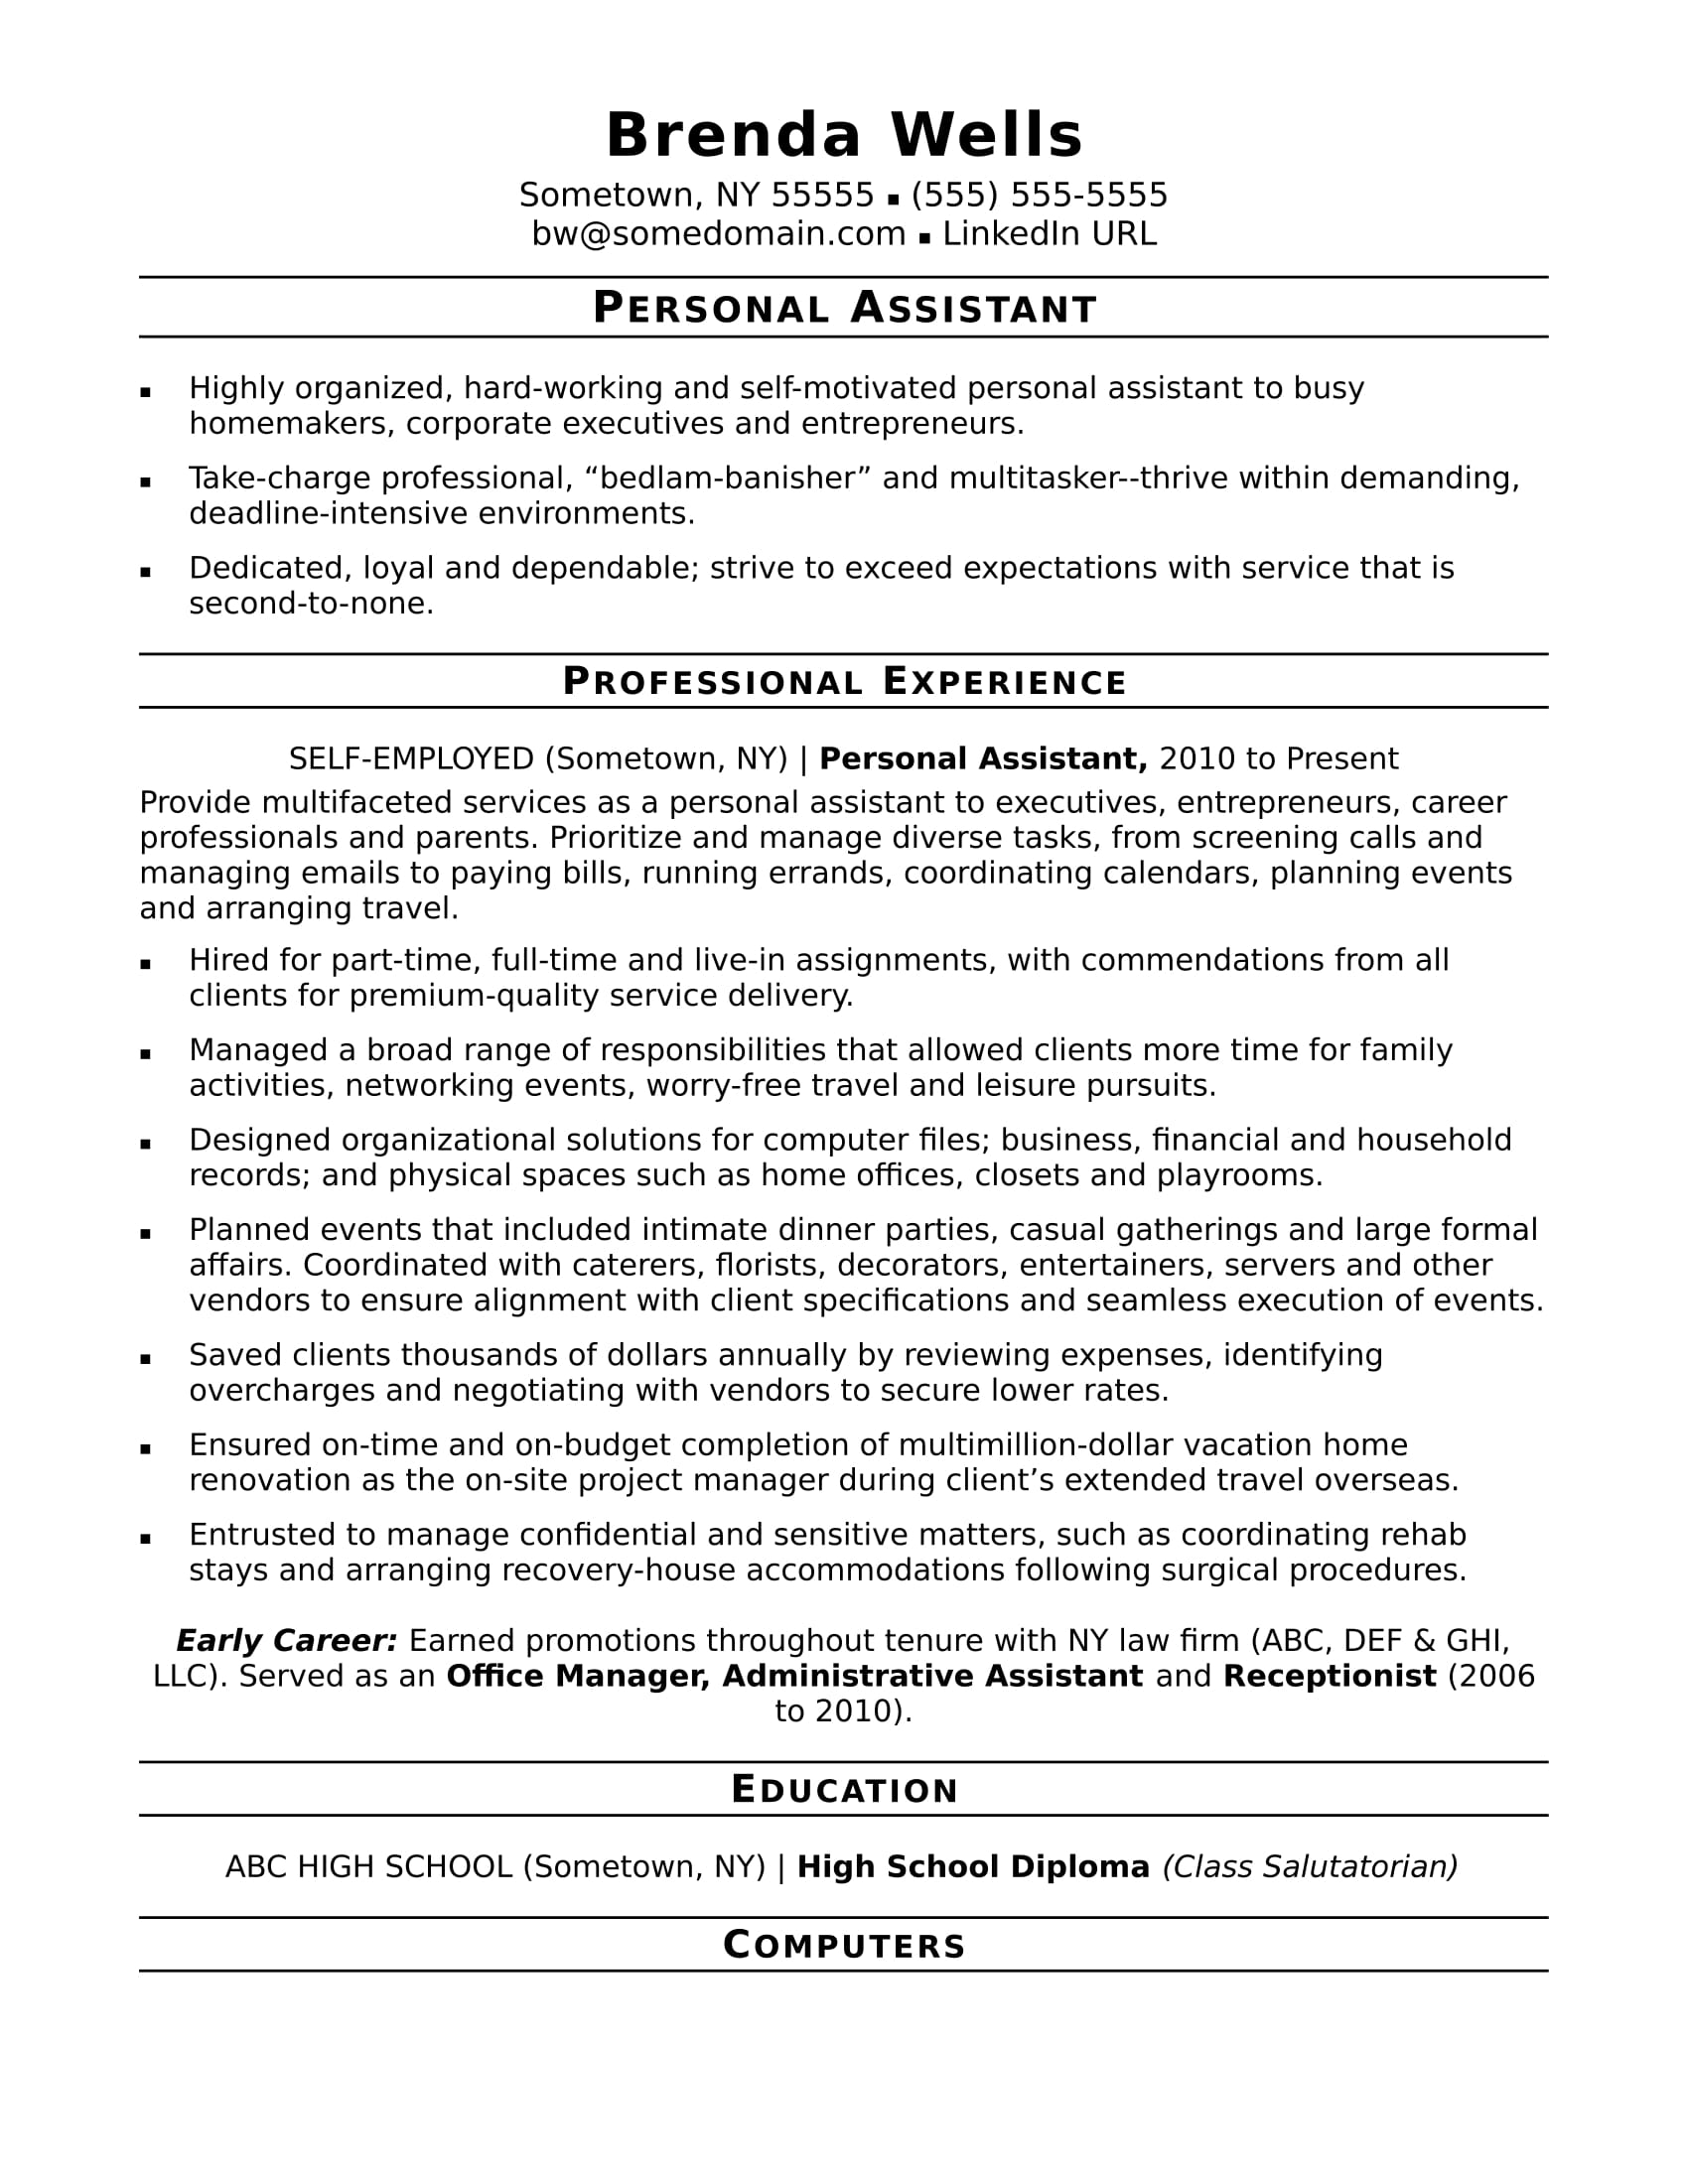 Superior Personal Assistant Resume Sample